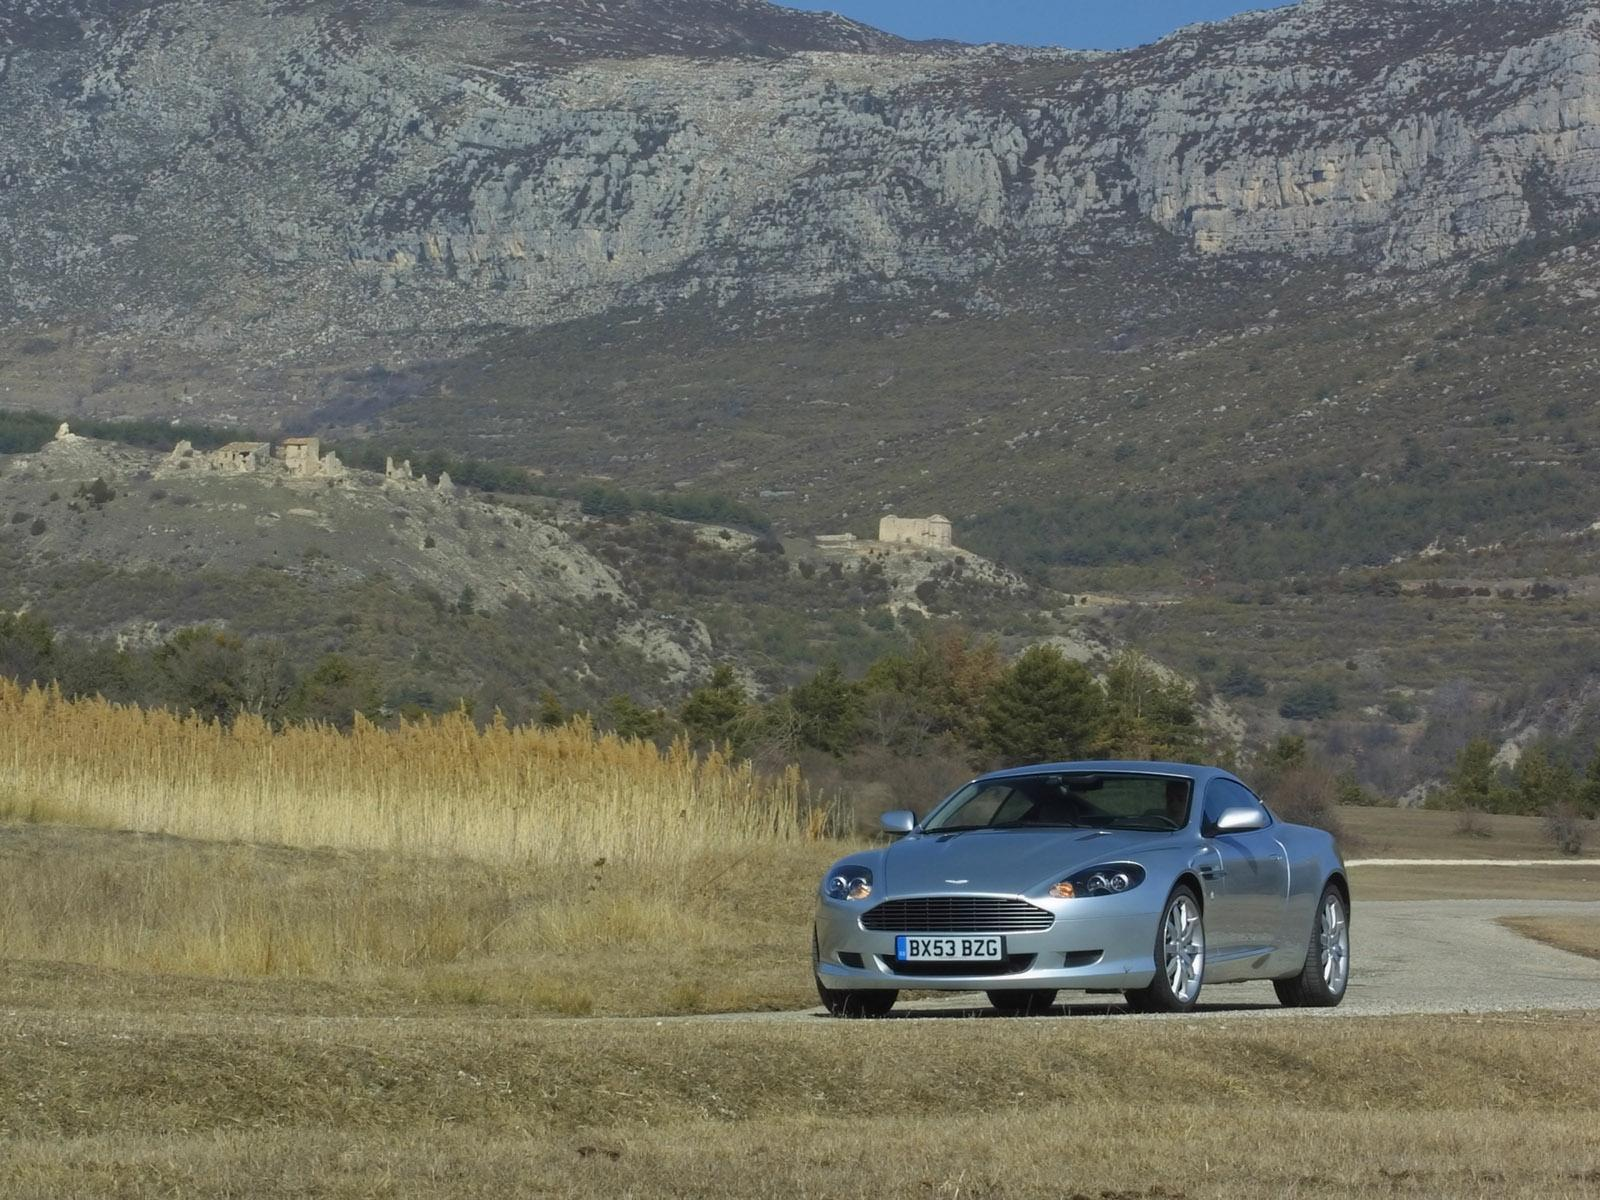 Aston Martin DB9 photo 18856